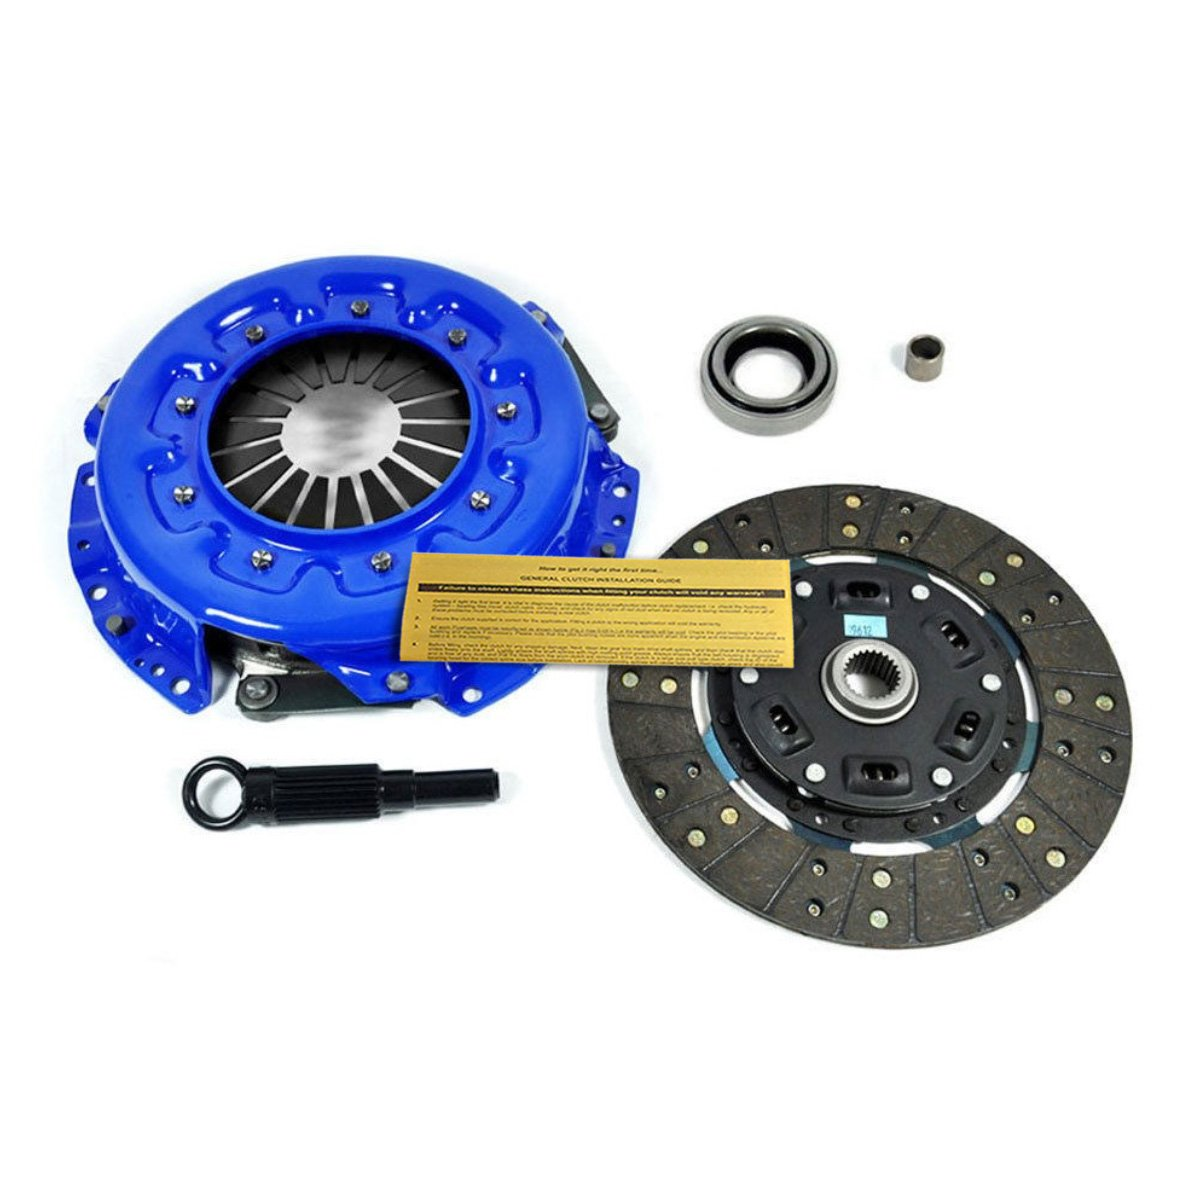 EF etapa 2 HD Kit de embrague para 90 - 96 Nissan 300ZX non-turbo 3.0L DOHC Nismo Z32: Amazon.es: Coche y moto